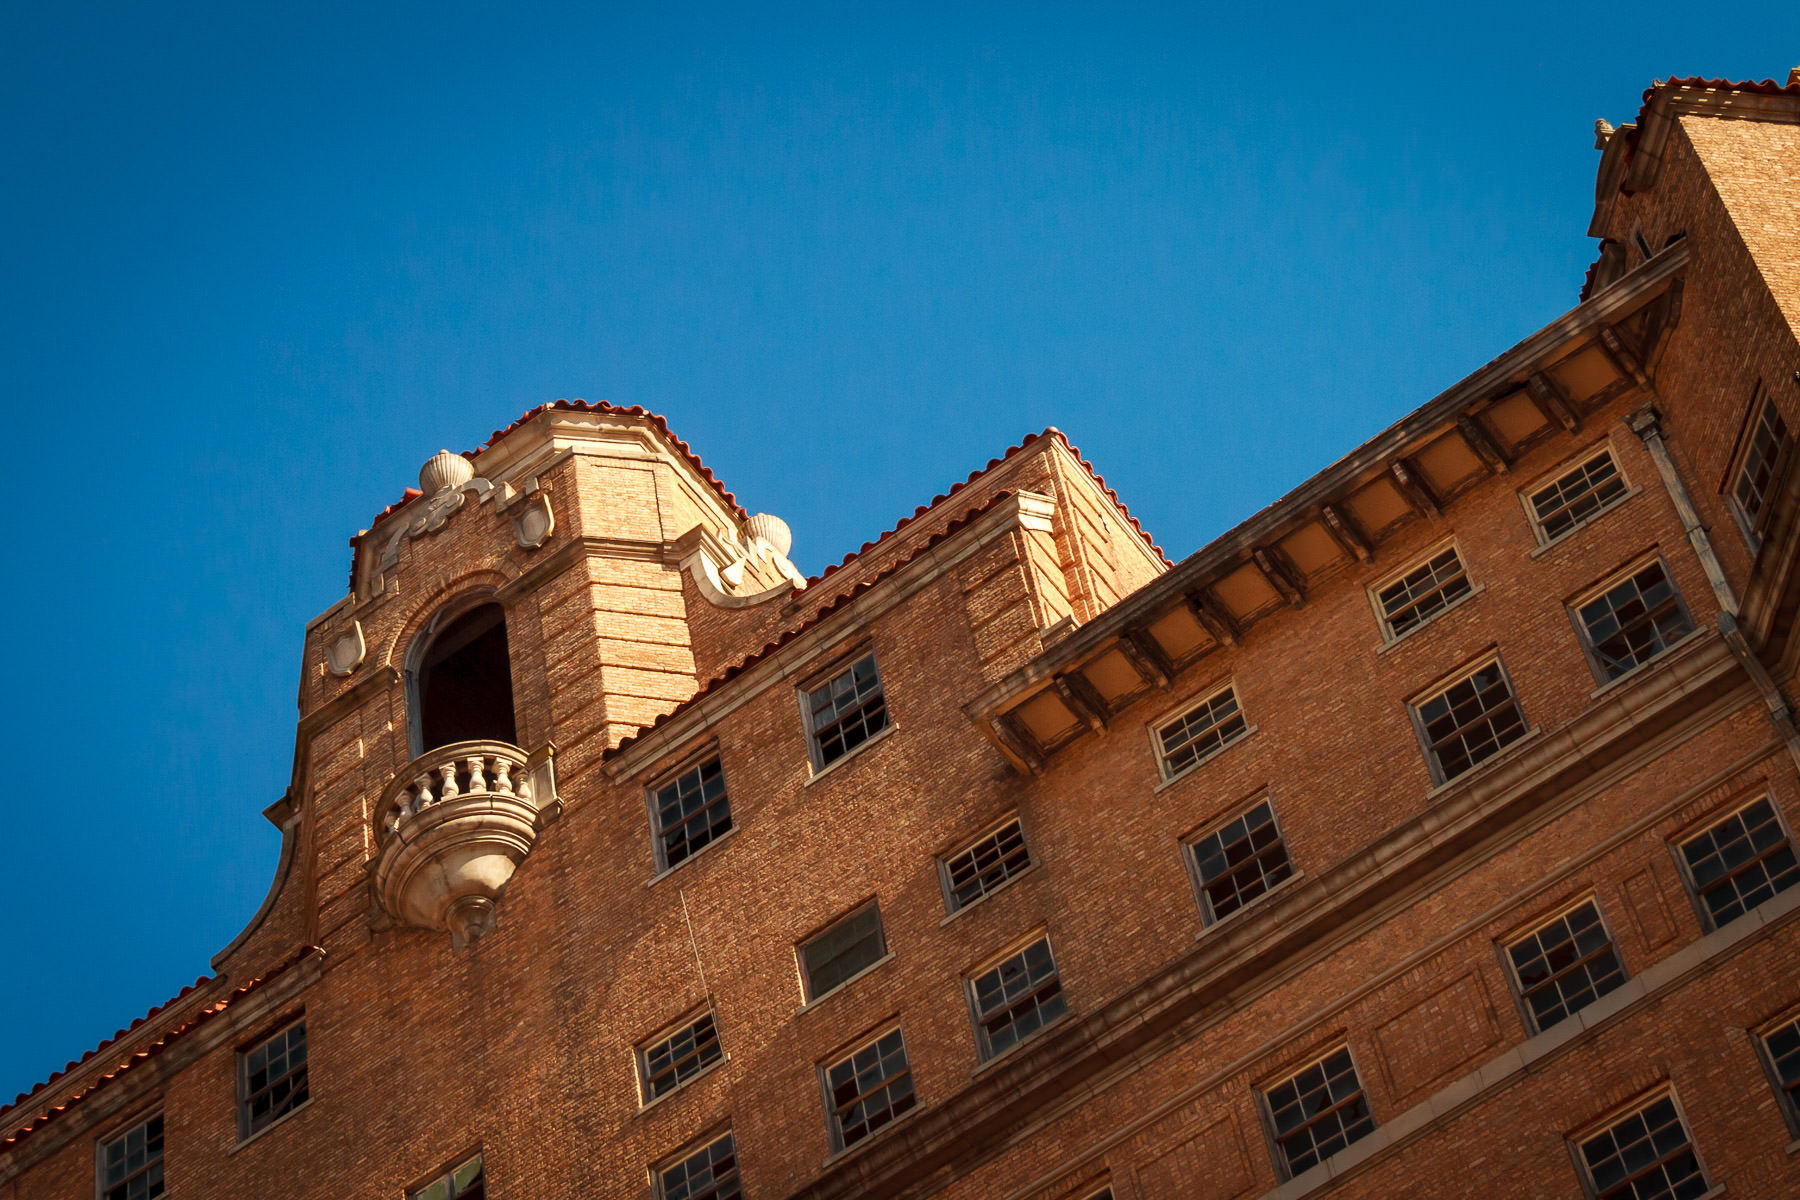 The long-abandoned Baker Hotel in Mineral Wells rises into the clear blue Texas sky.